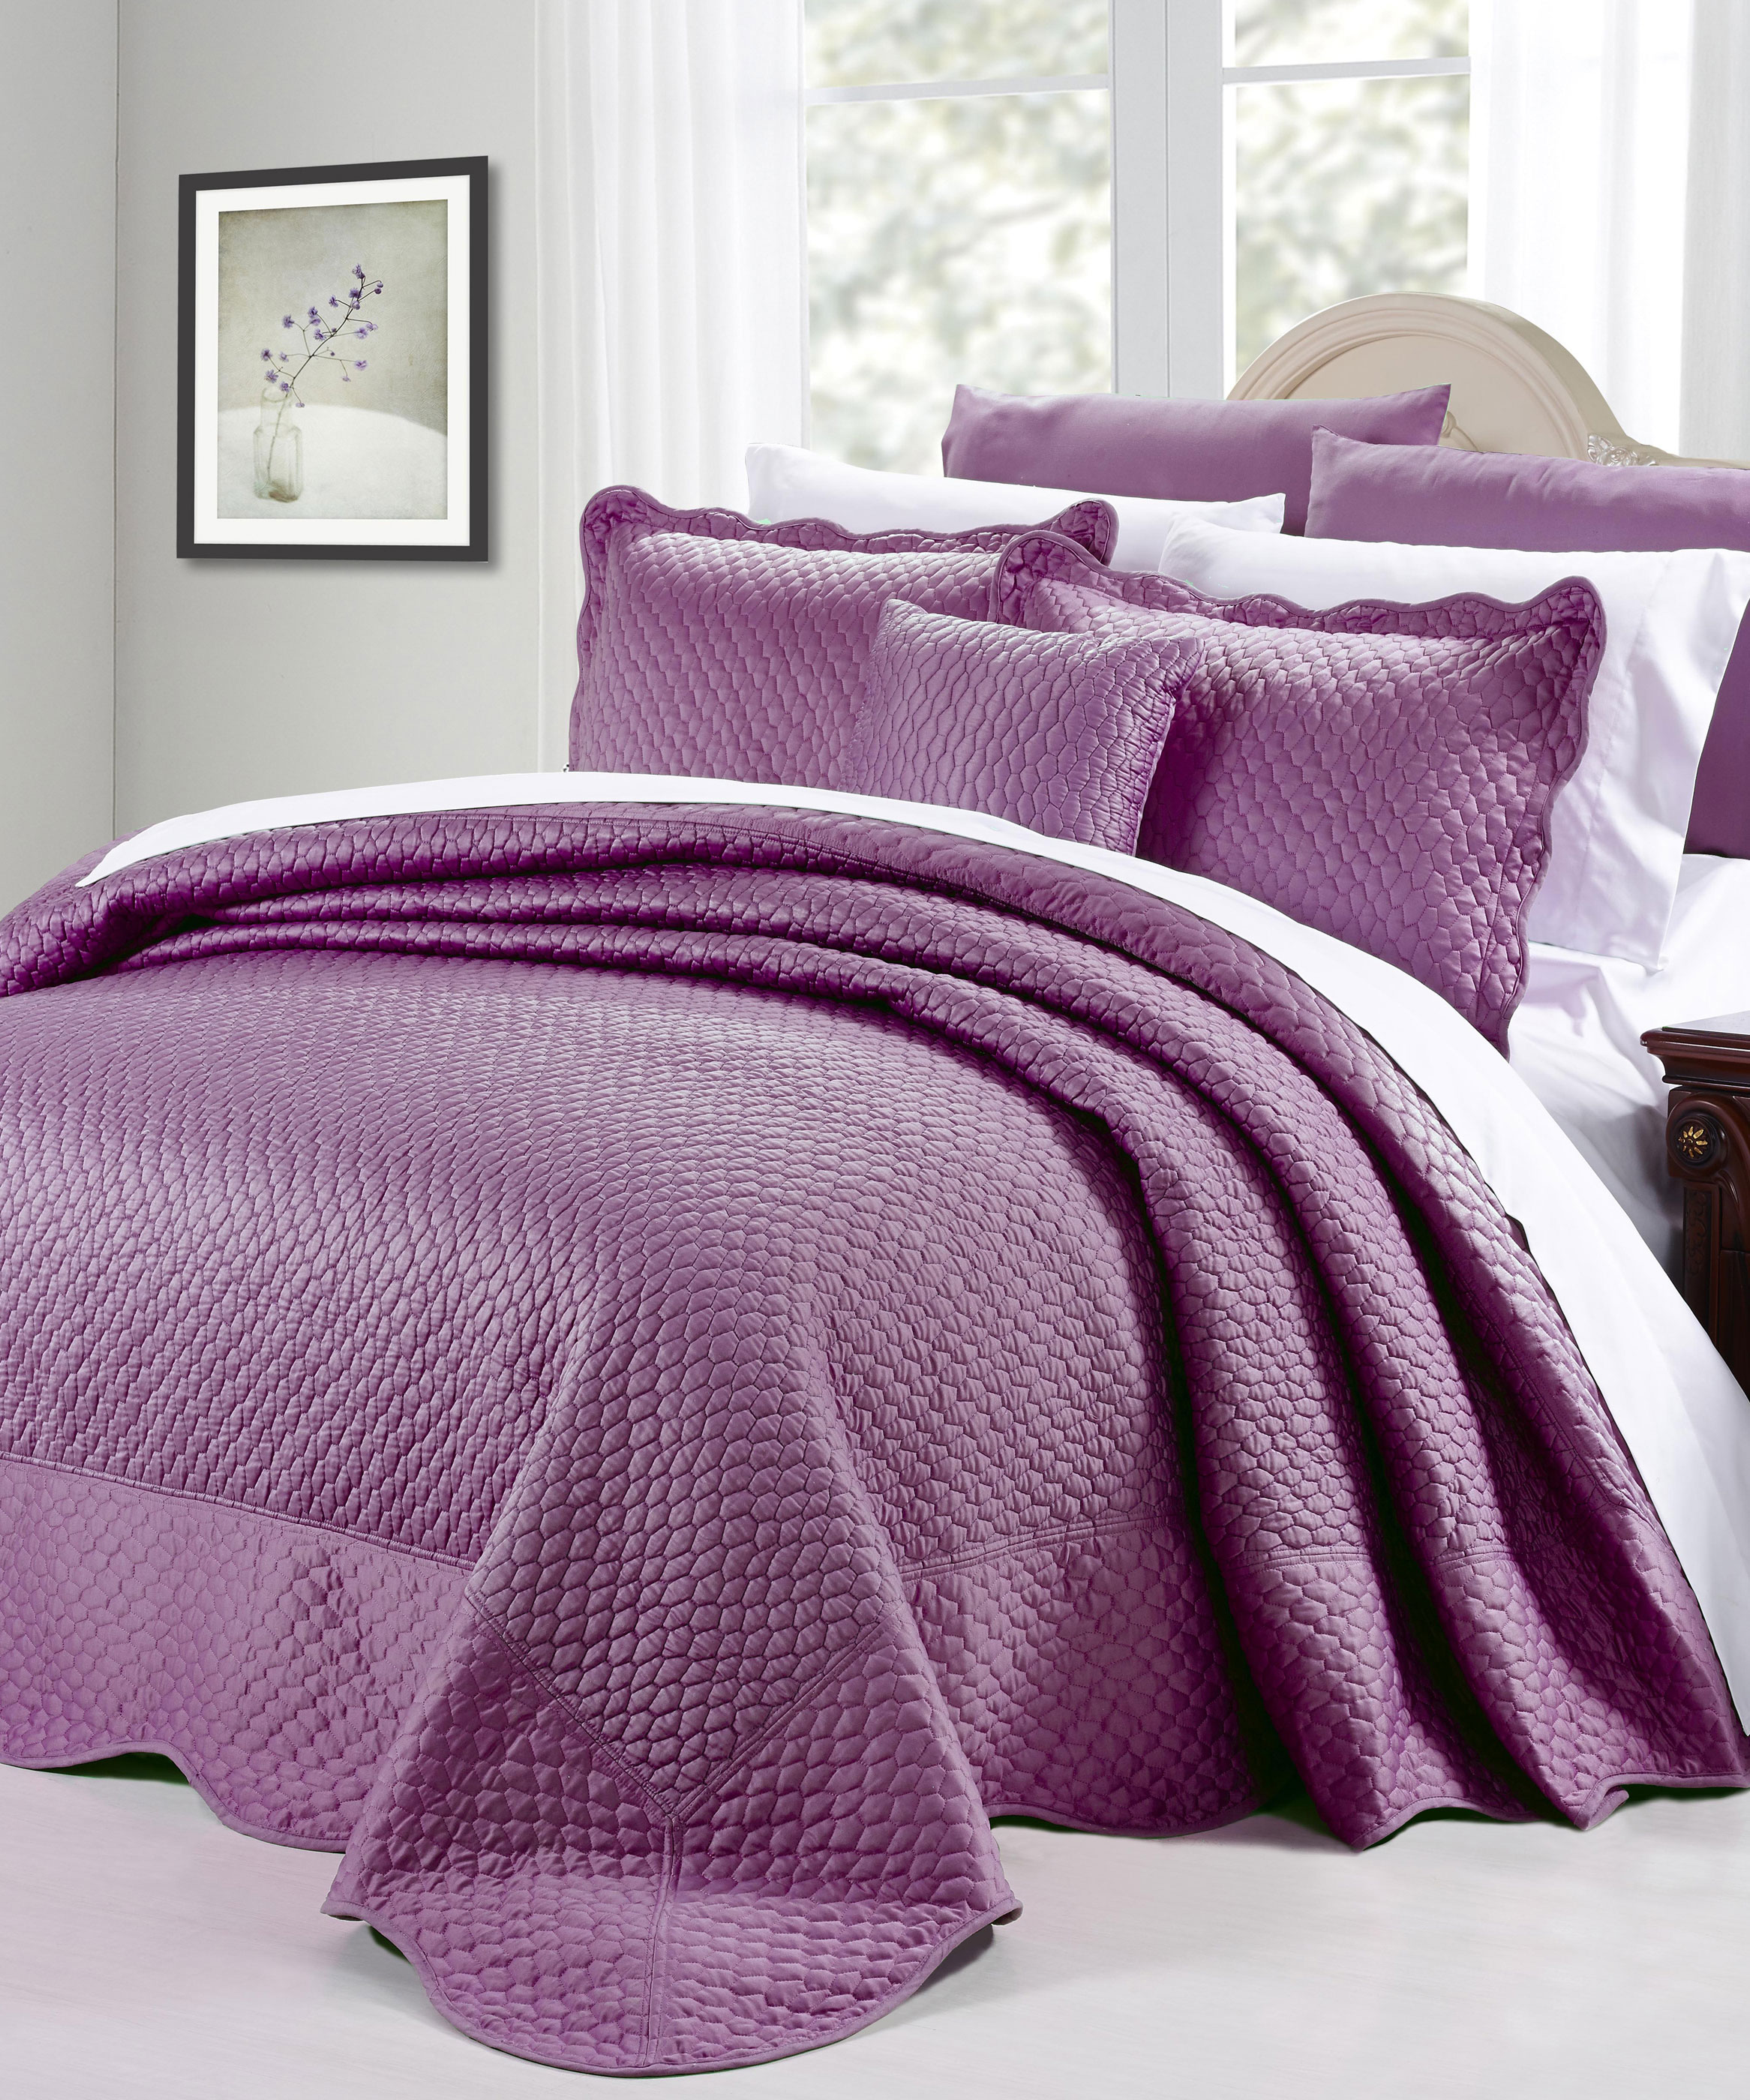 dreadedple dreaded and solid photo bedding nursery bed conjunction gold sheets sets set king uk quilt purple in comforter size beddings